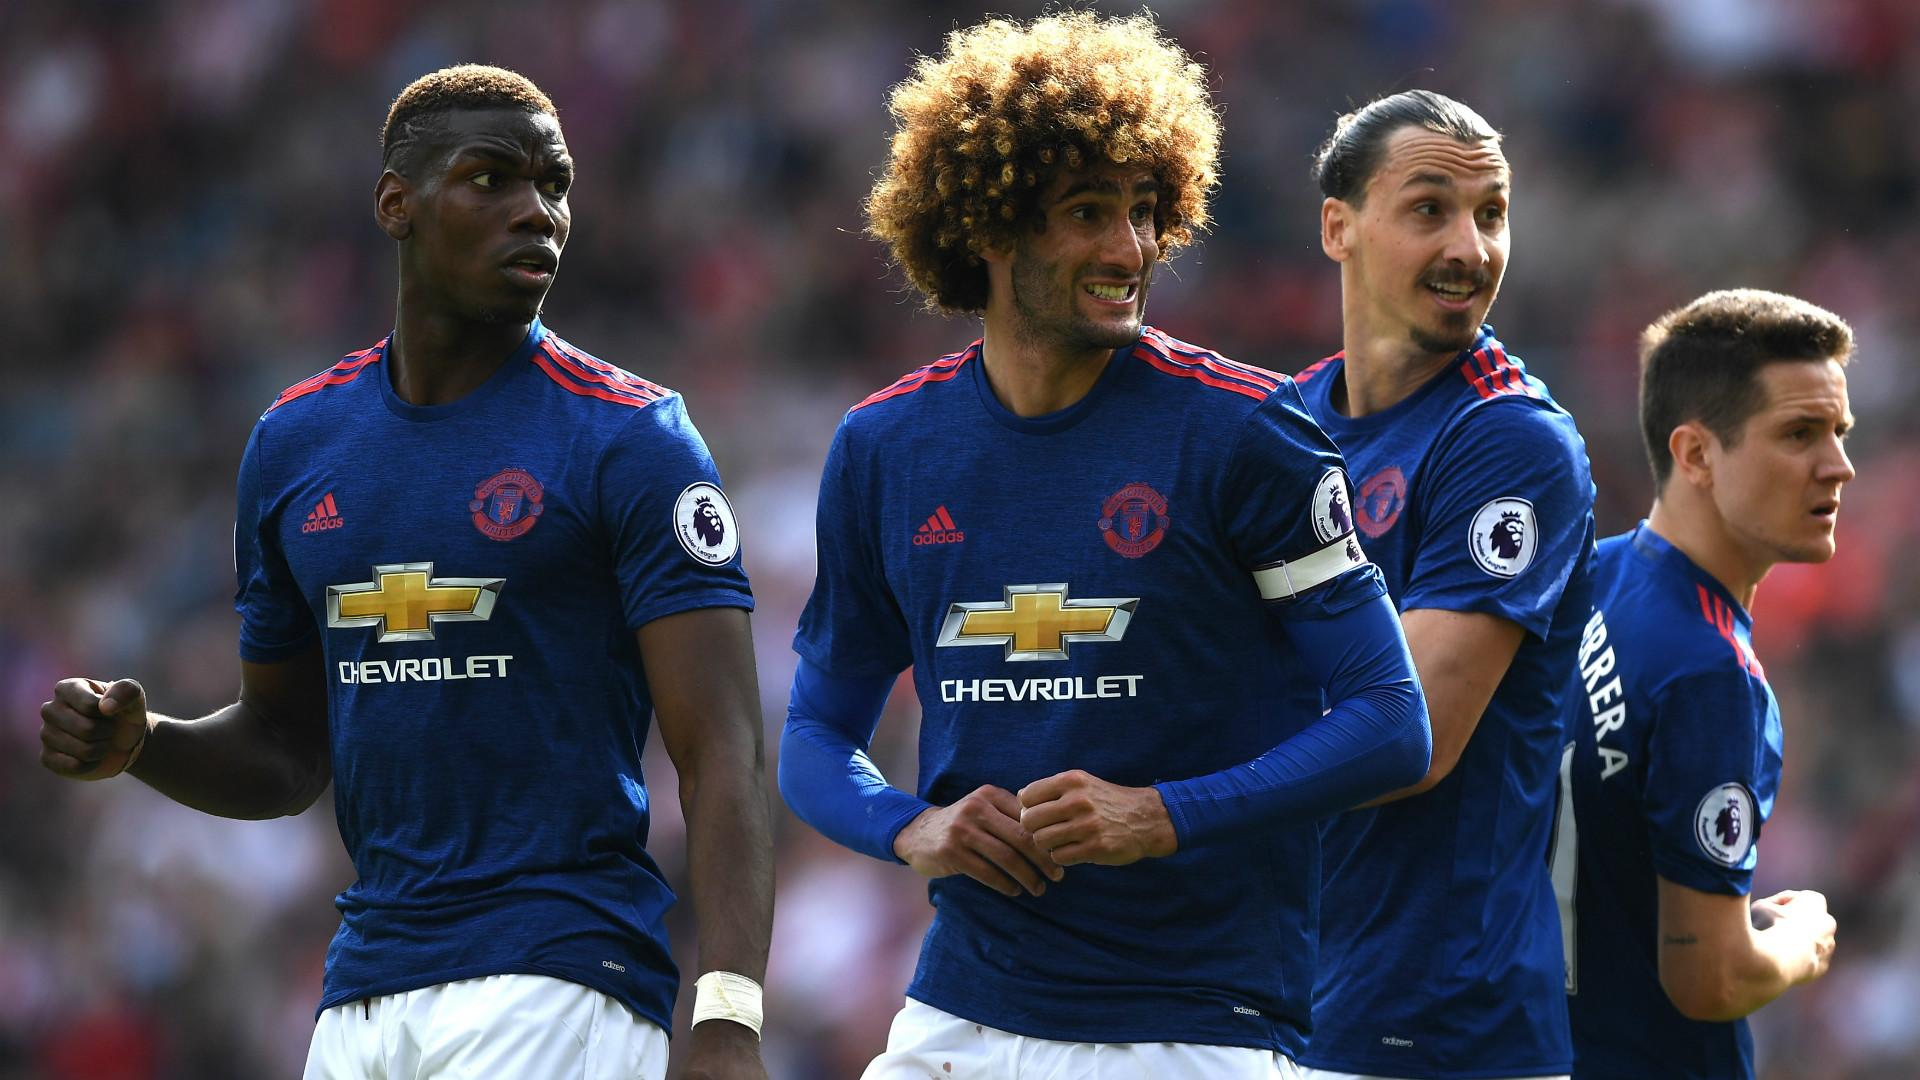 Chelsea Vs Man City Channel: Manchester United Vs Chelsea: TV Channel, Stream, Kick-off